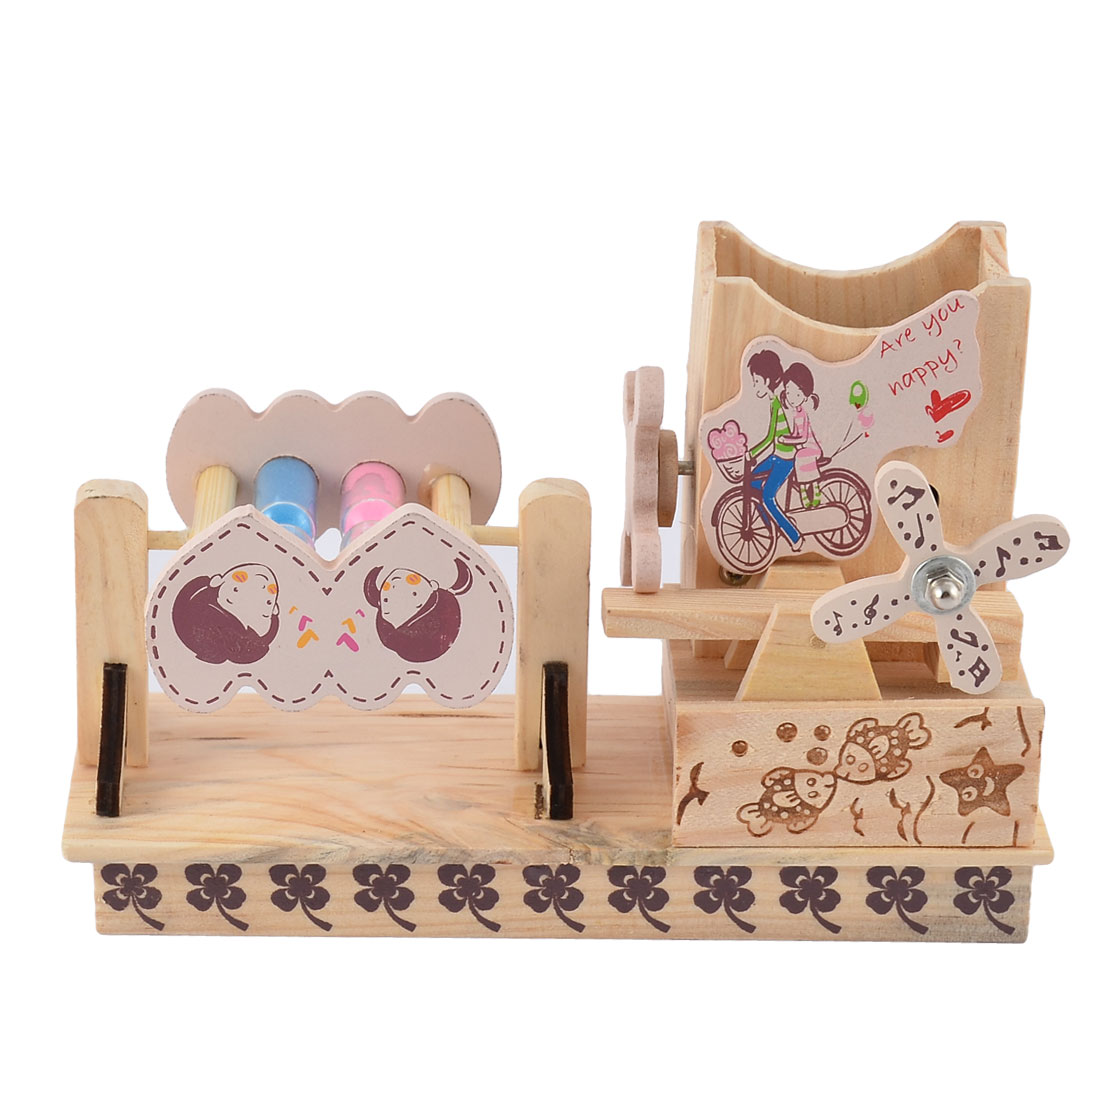 Birthday Gift Wooden Lover Pattern Windmill Decor Music Box Desktop Decoration Beige